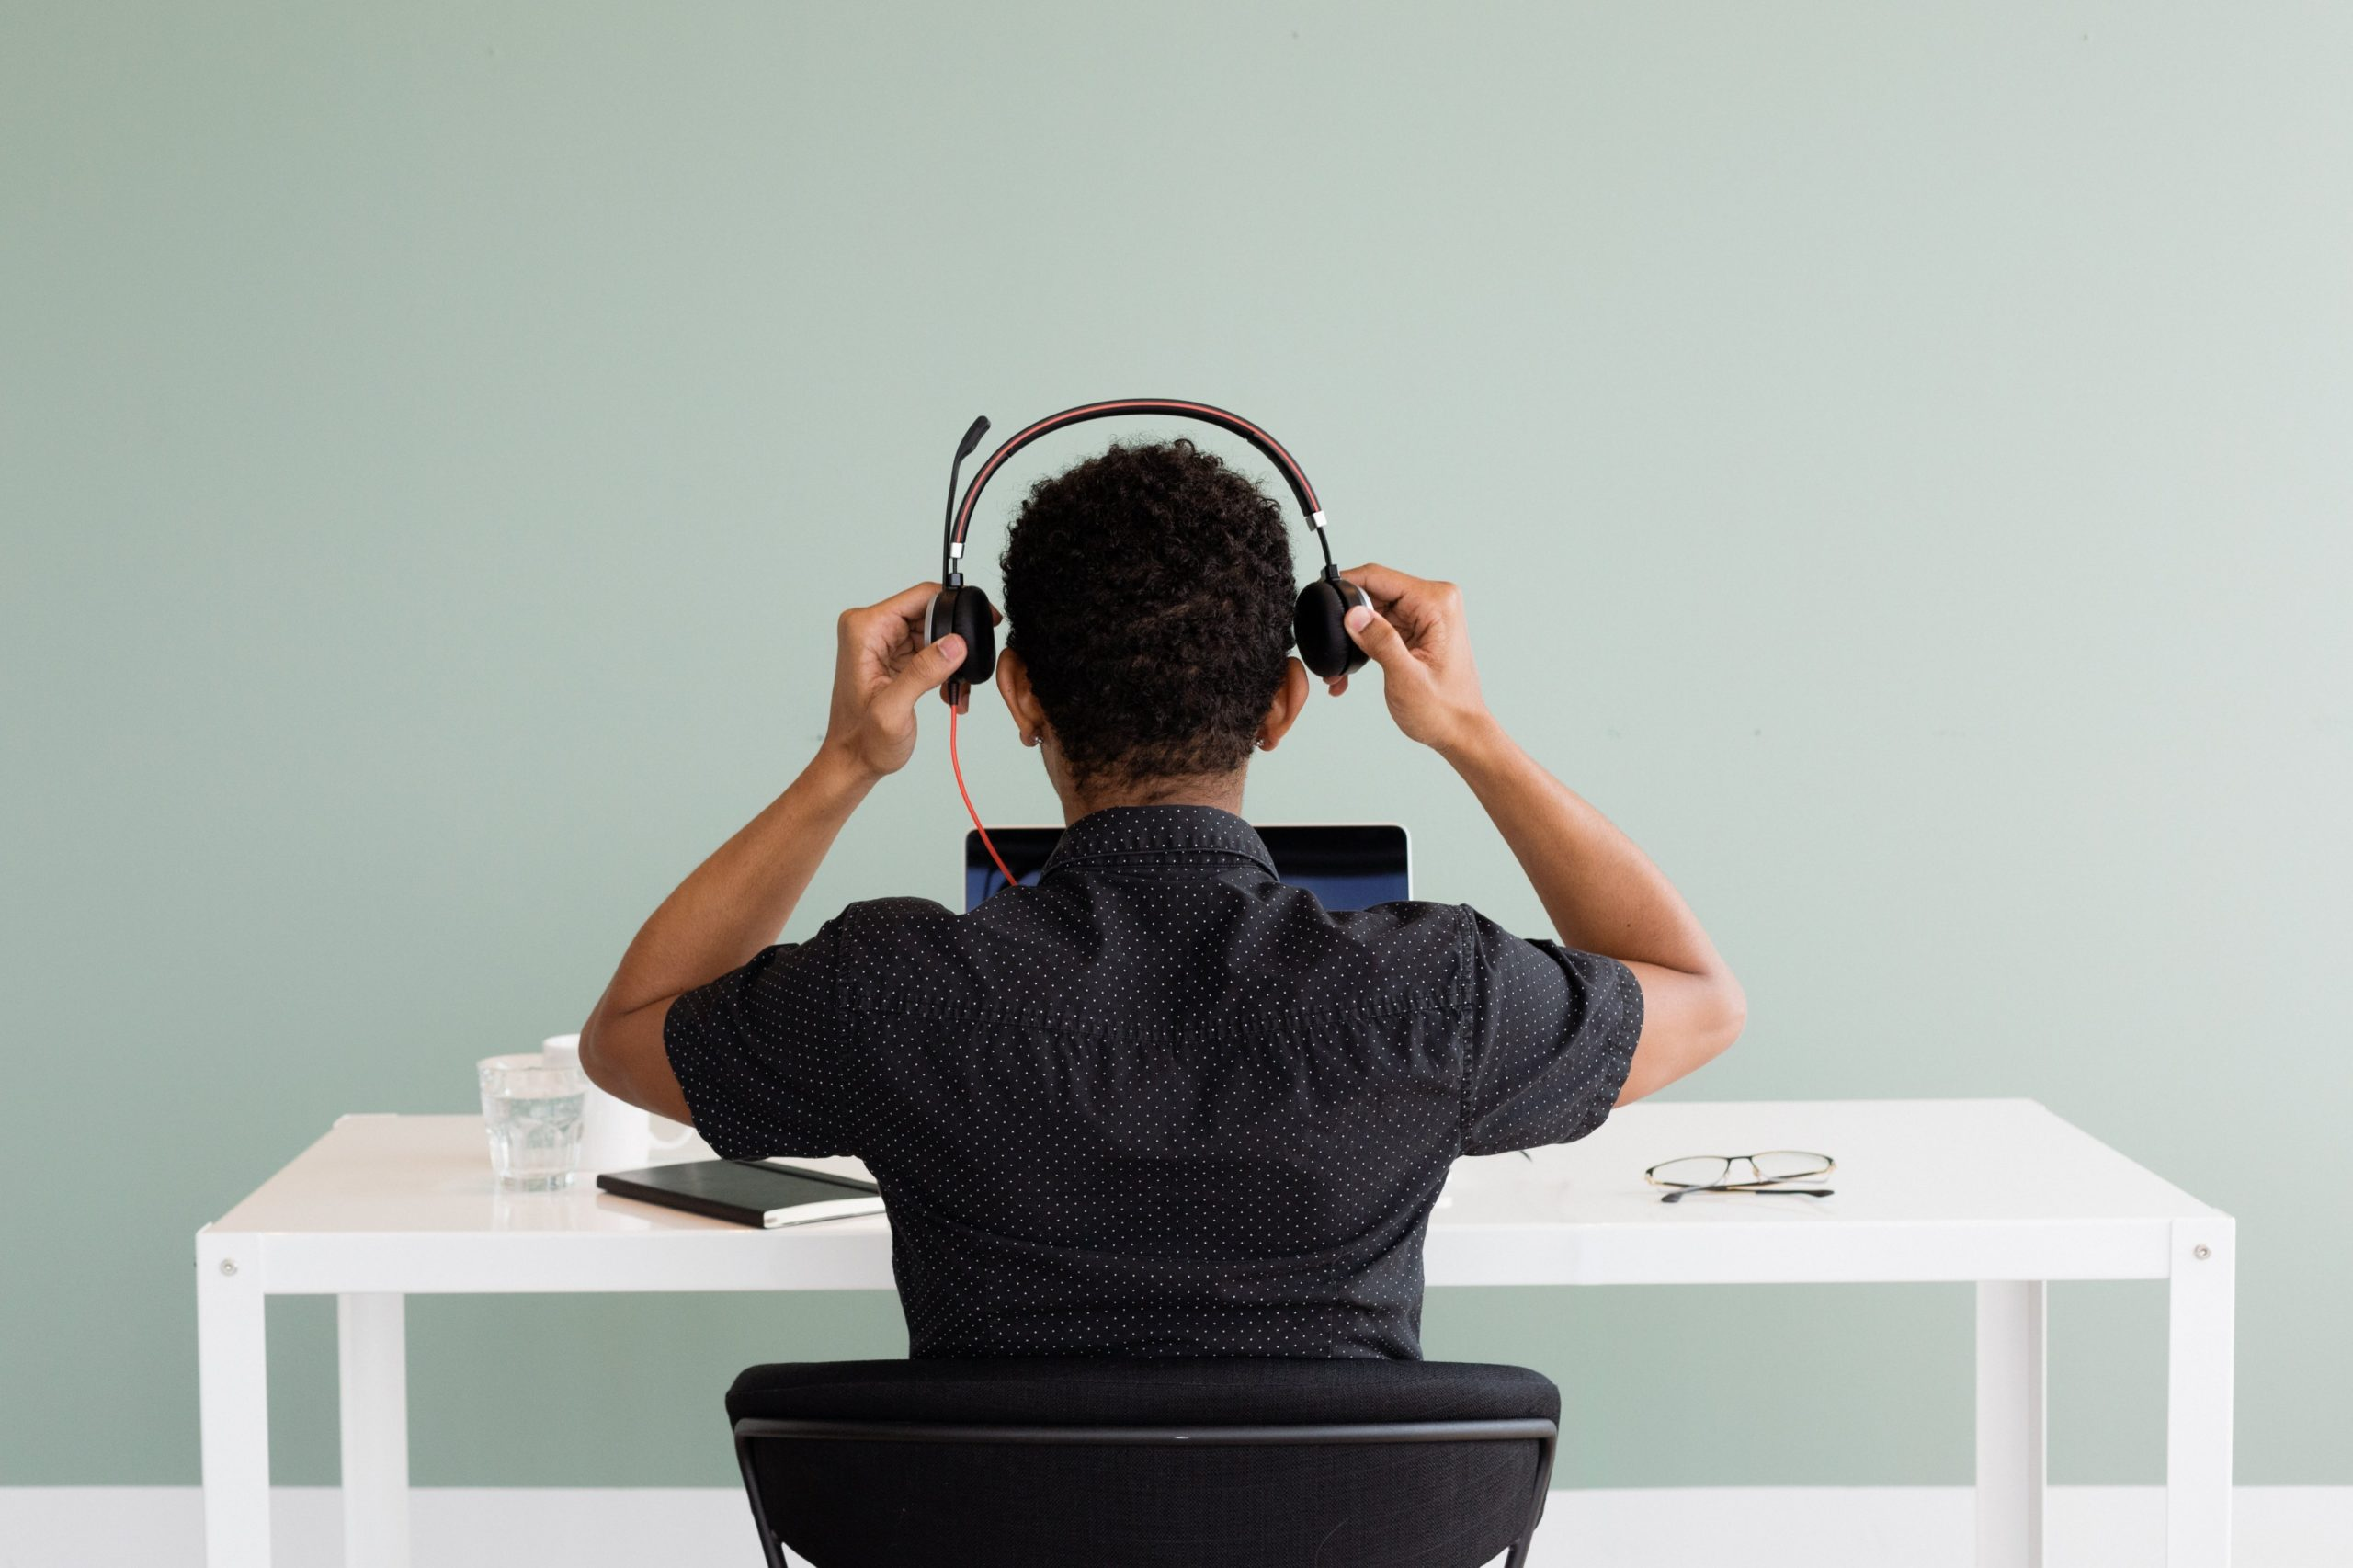 person with headset sitting at a desk